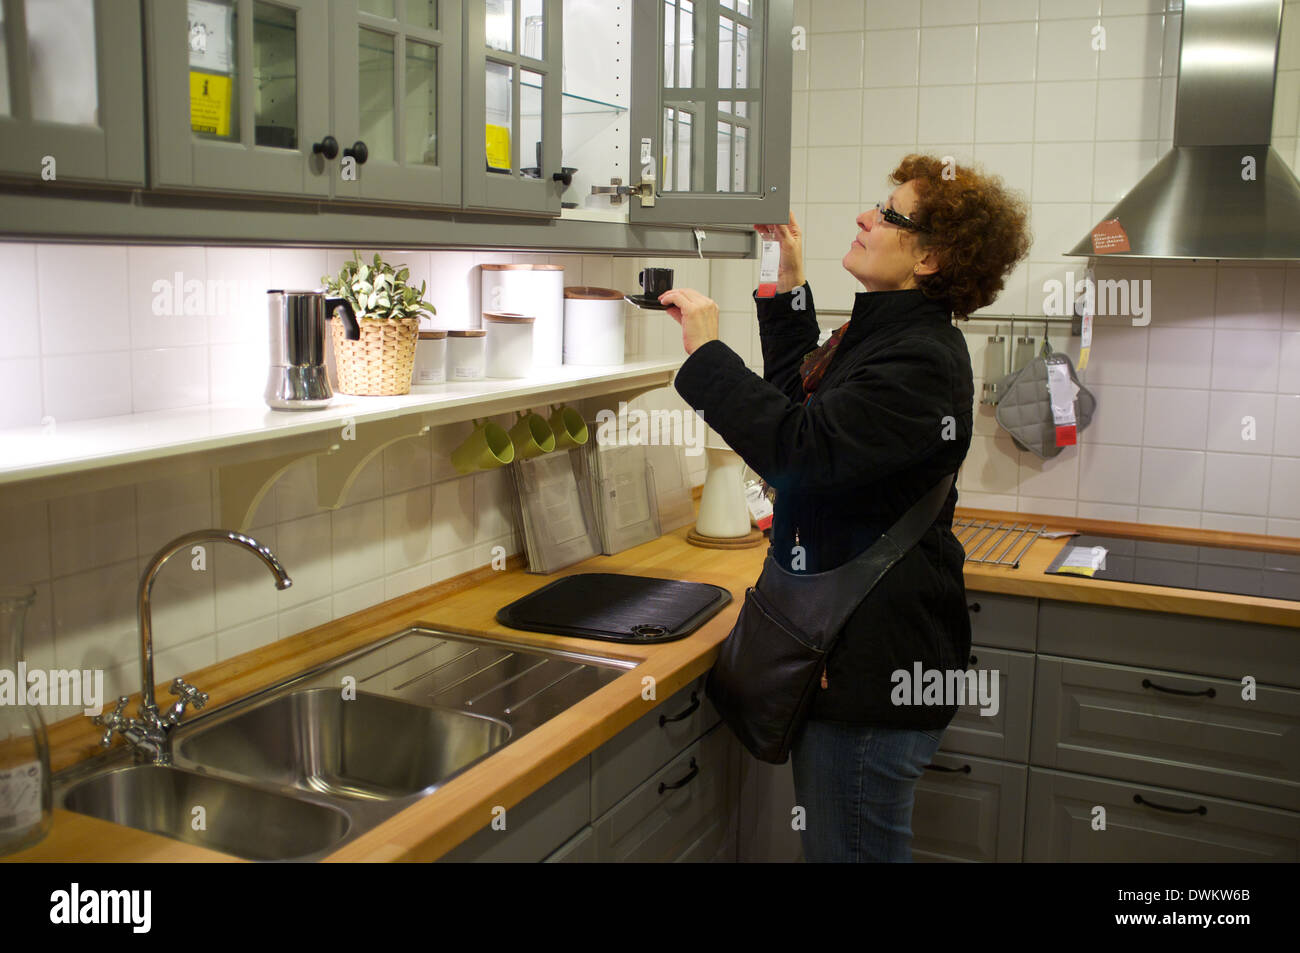 Ikea Kitchen Showroom   Stock Image